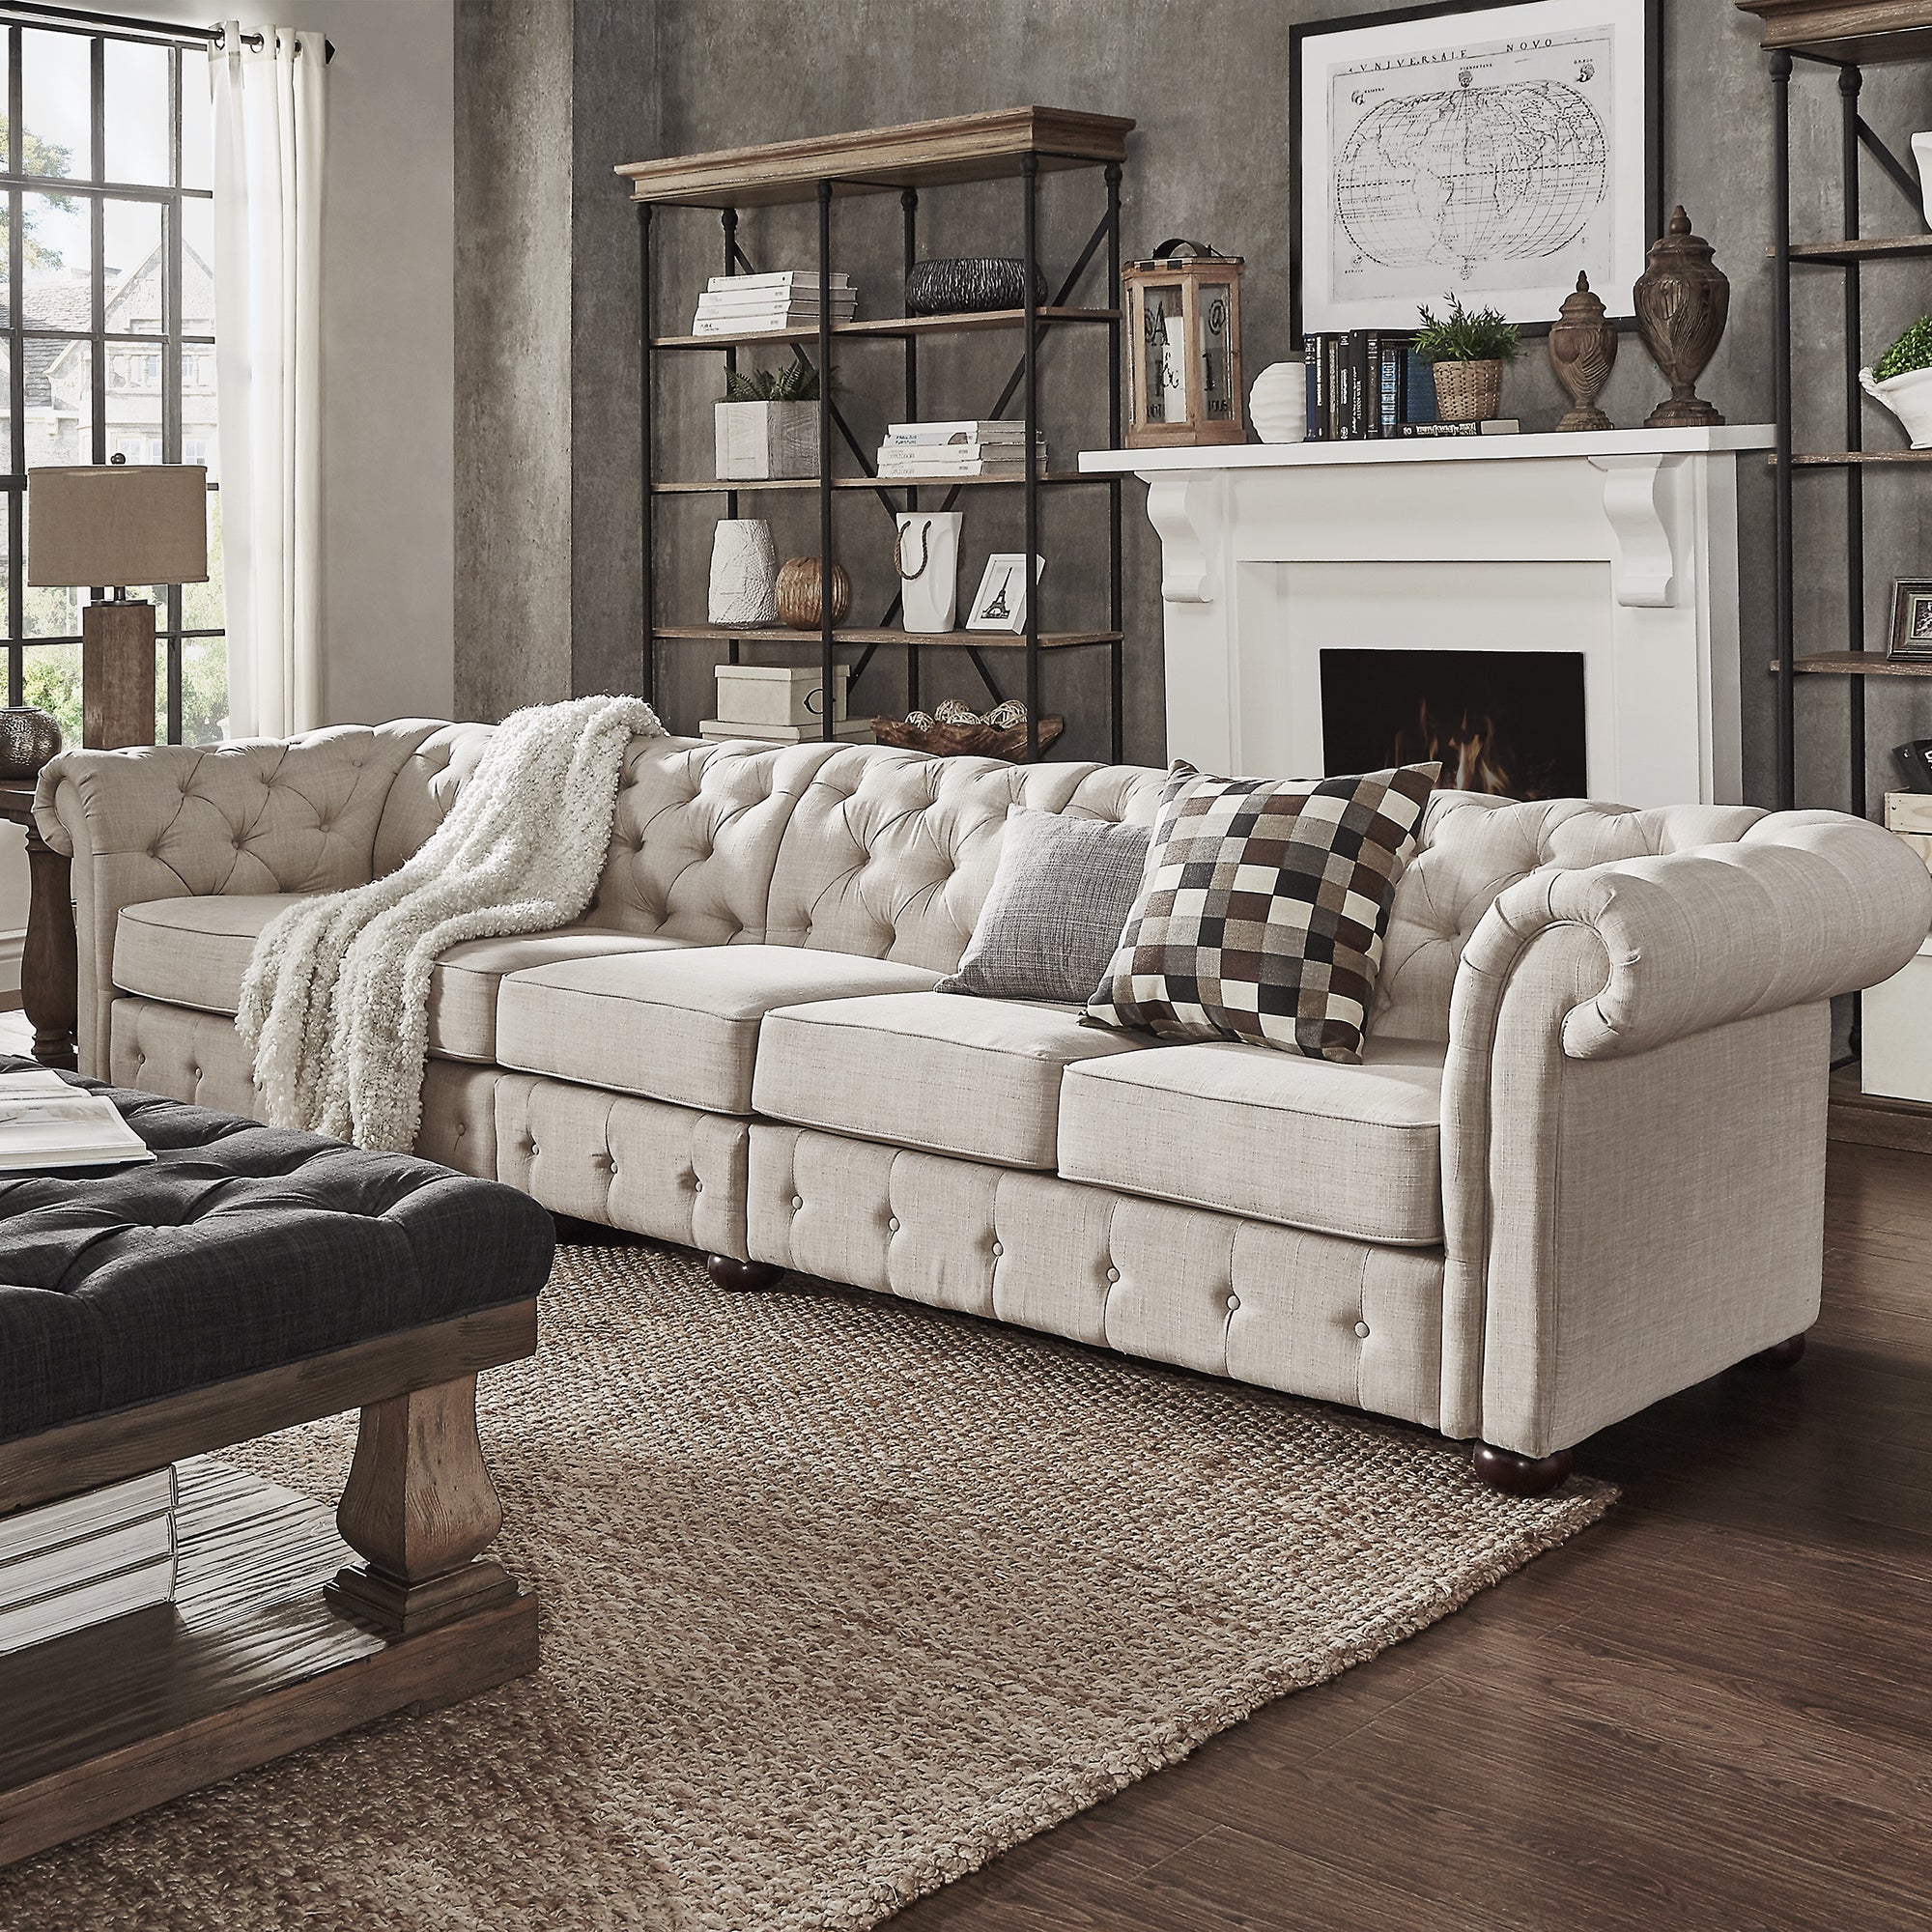 Knightsbridge Beige Linen Oversize Extra Long Tufted Chesterfield Modular Sofa By Inspire Q On Free Shipping Today